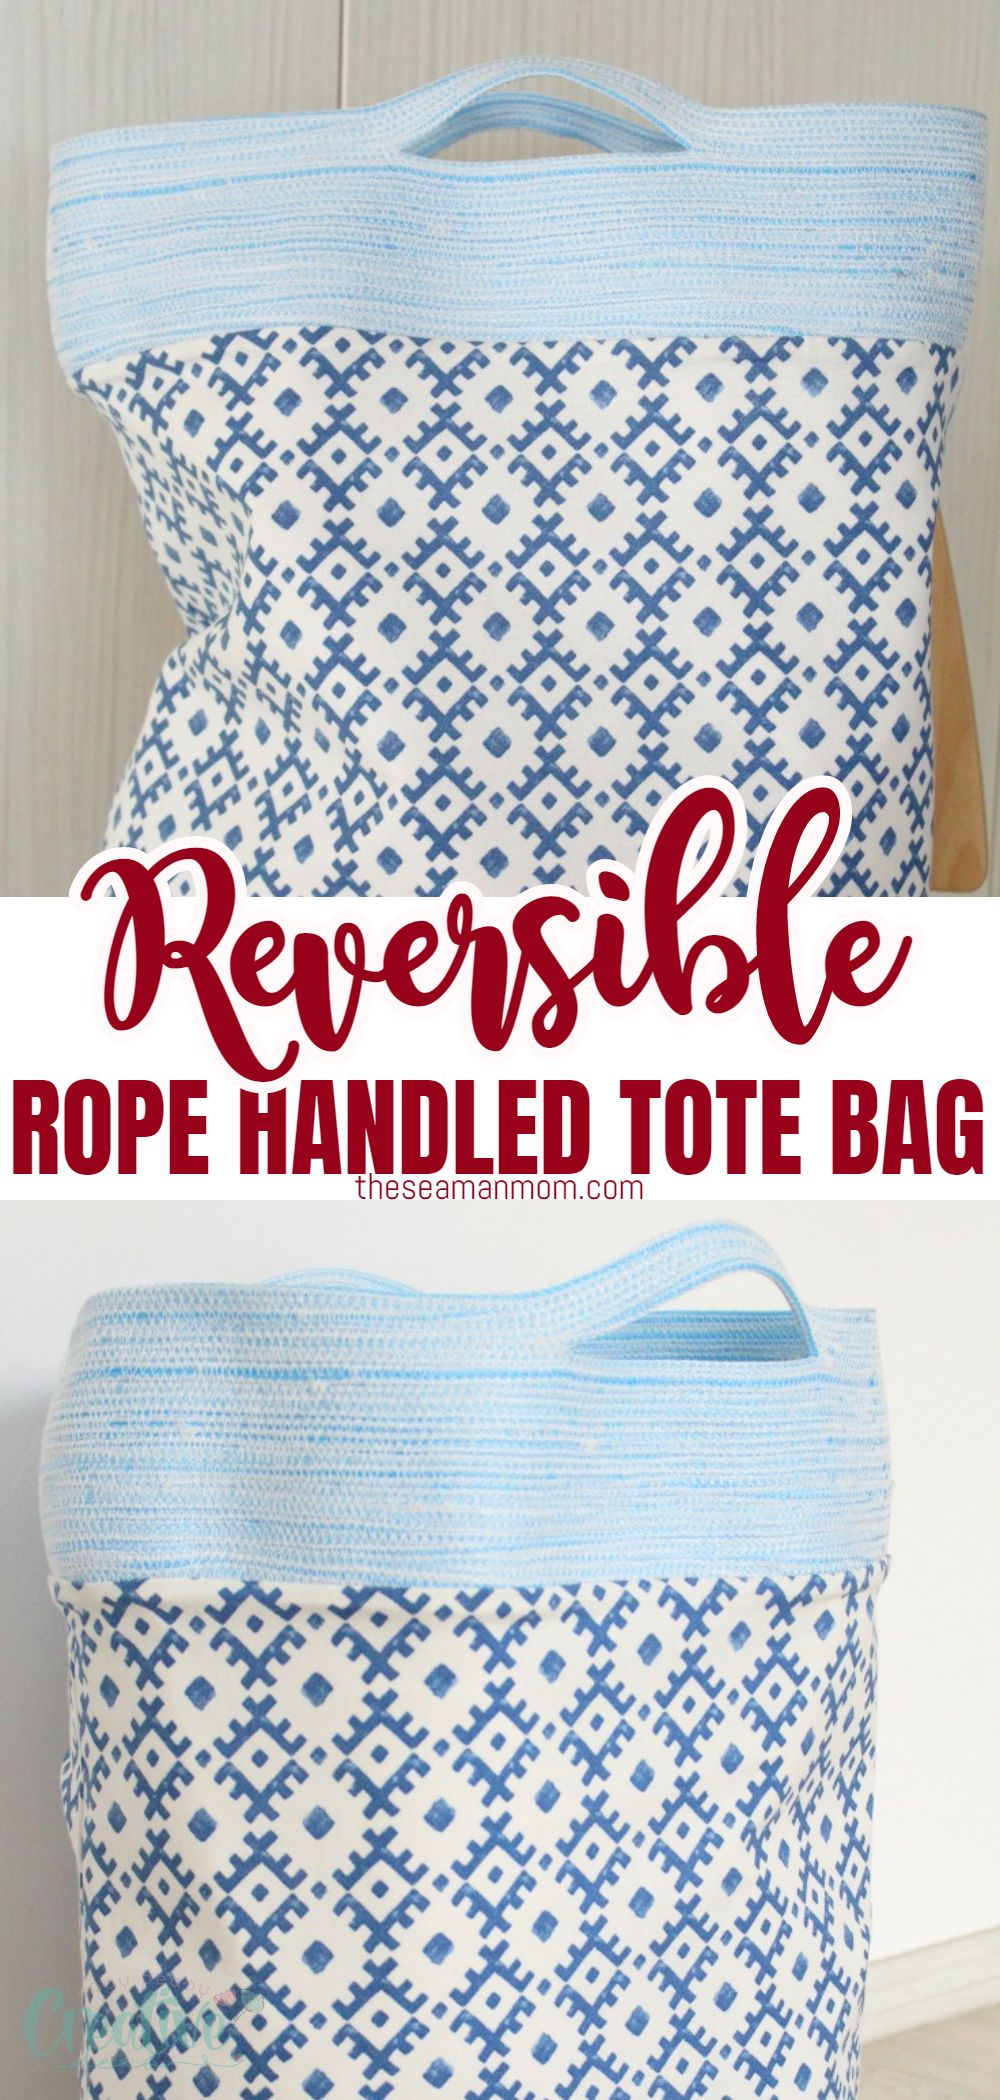 Make a practical and pretty reversible tote bag that will soon become your favorite with this easy rope handle tote bag tutorial. Great project for beginners and a wonderful gift for friends and family! via @petroneagu